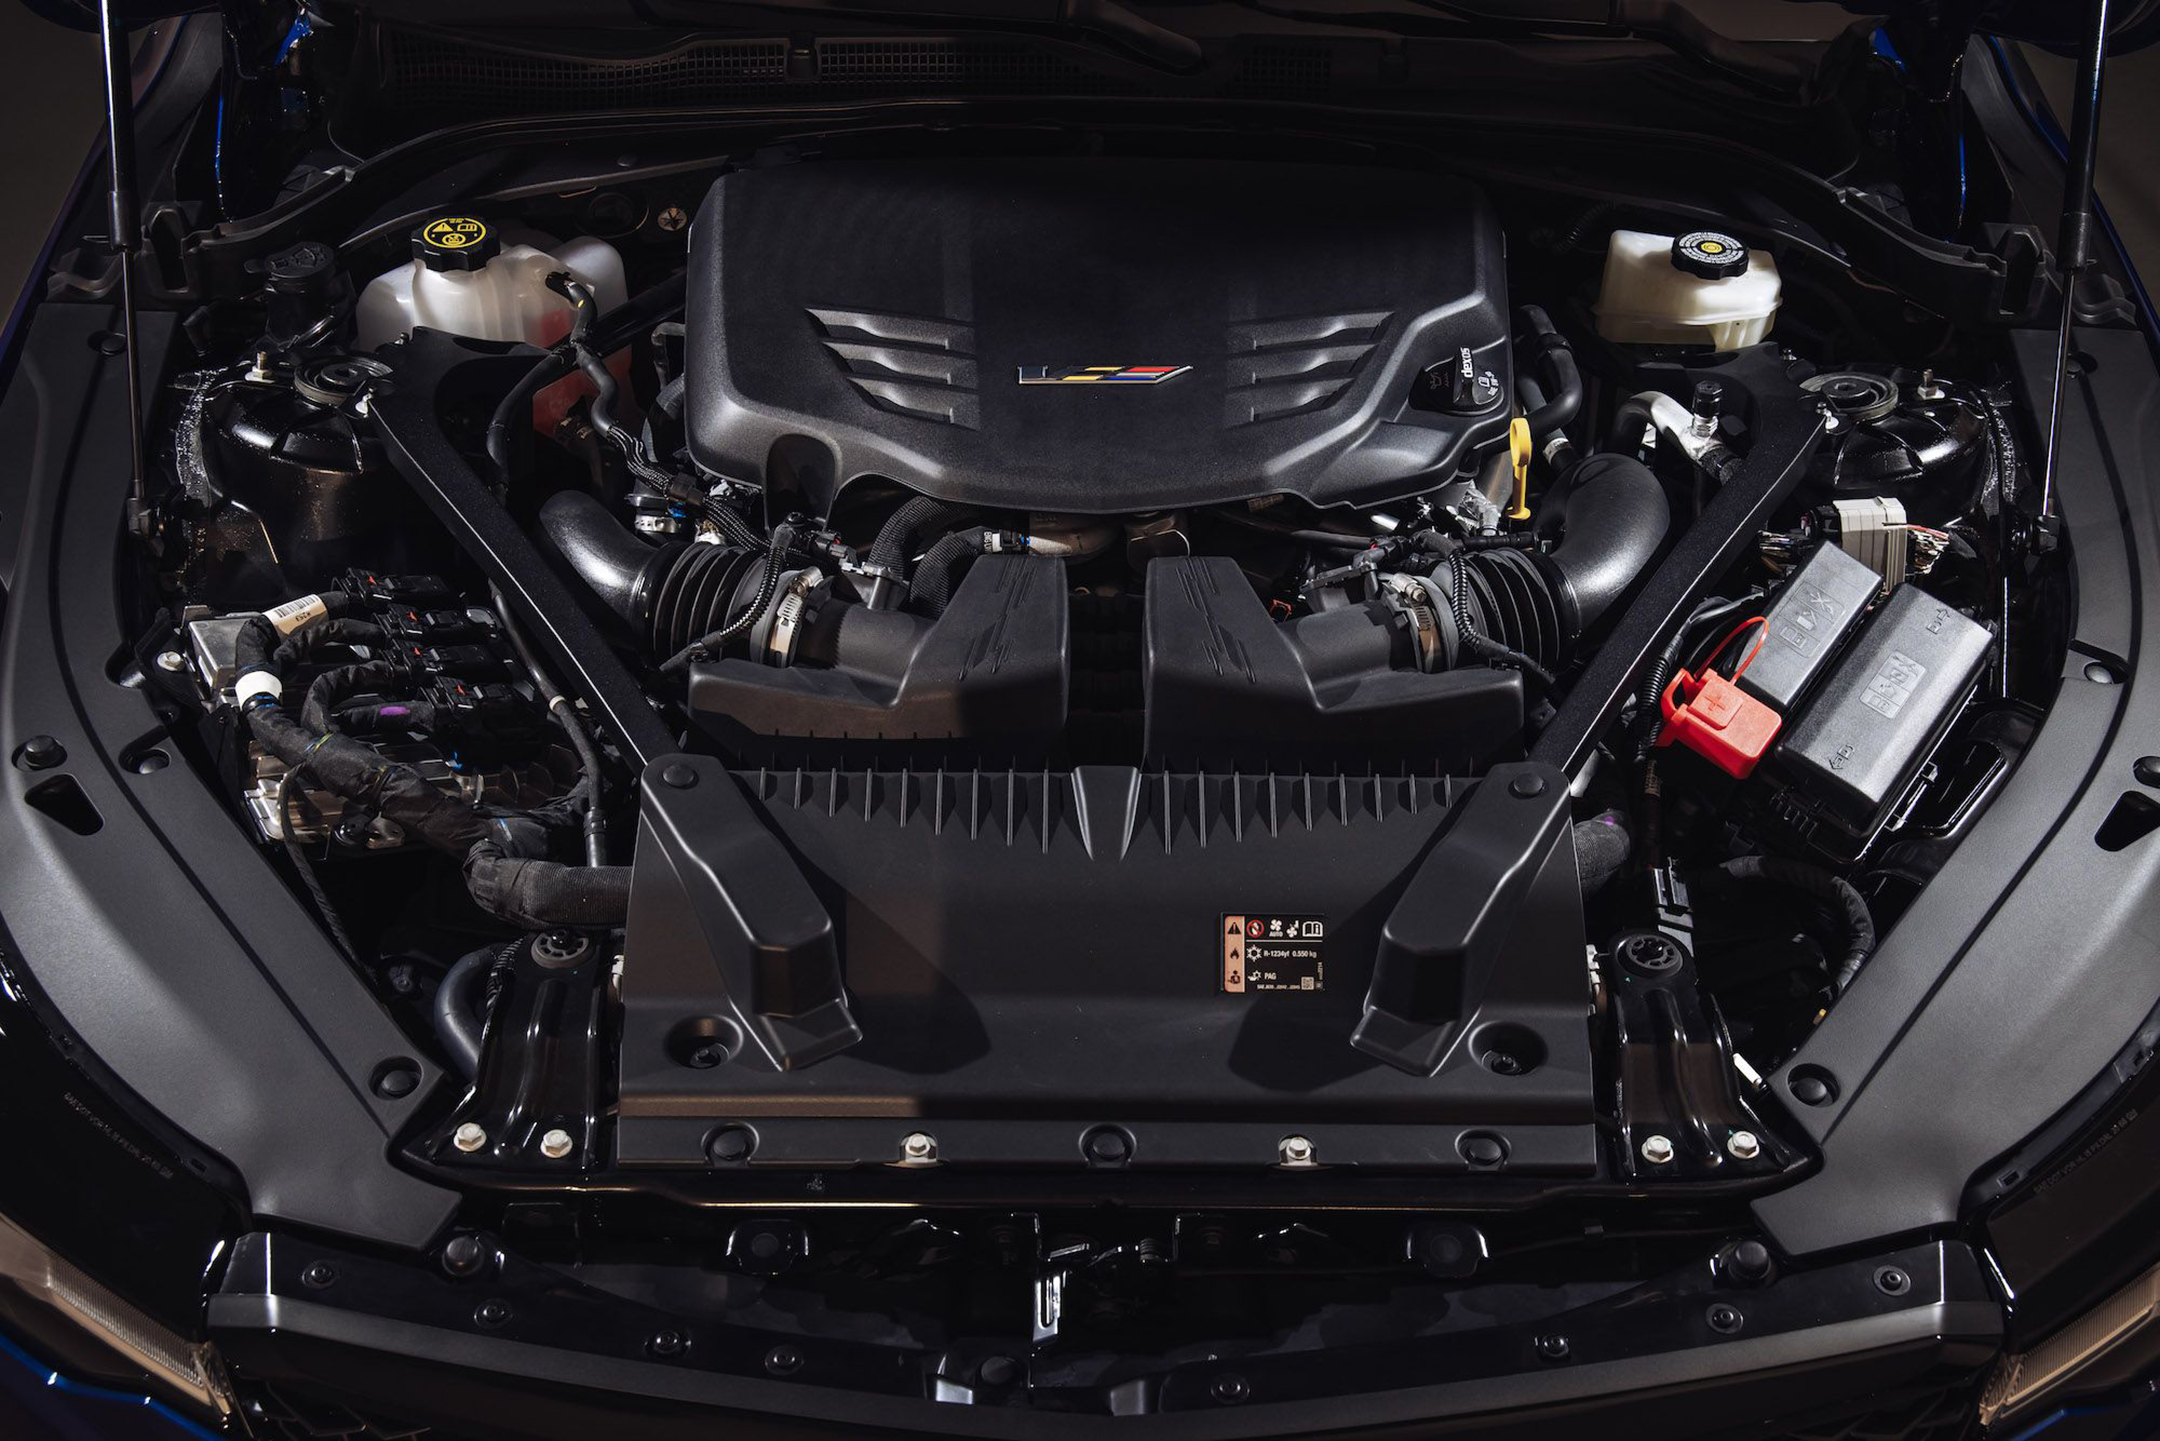 Cadillac CT4V Blackwing - 2021 - V6 3.6L Twin-Turbo - engine / moteur - under the hood - photo by Michael Simari via RoadandTrack